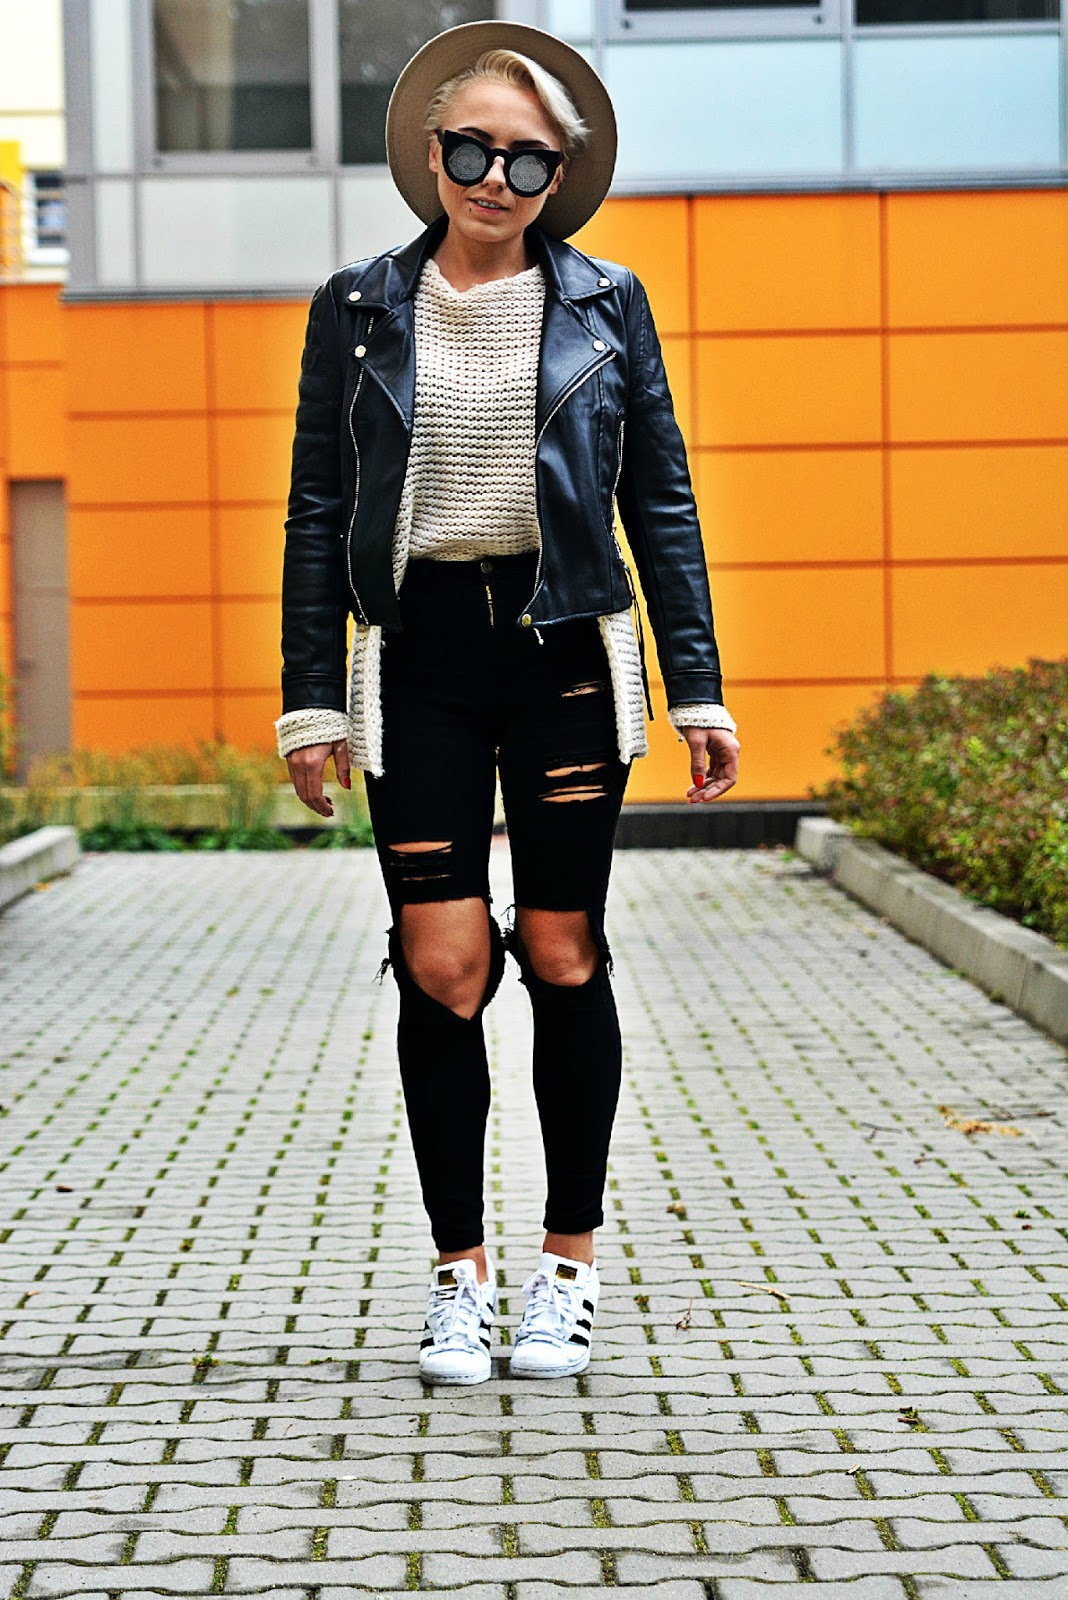 karyn_black_biker_jacket_beige_sweater